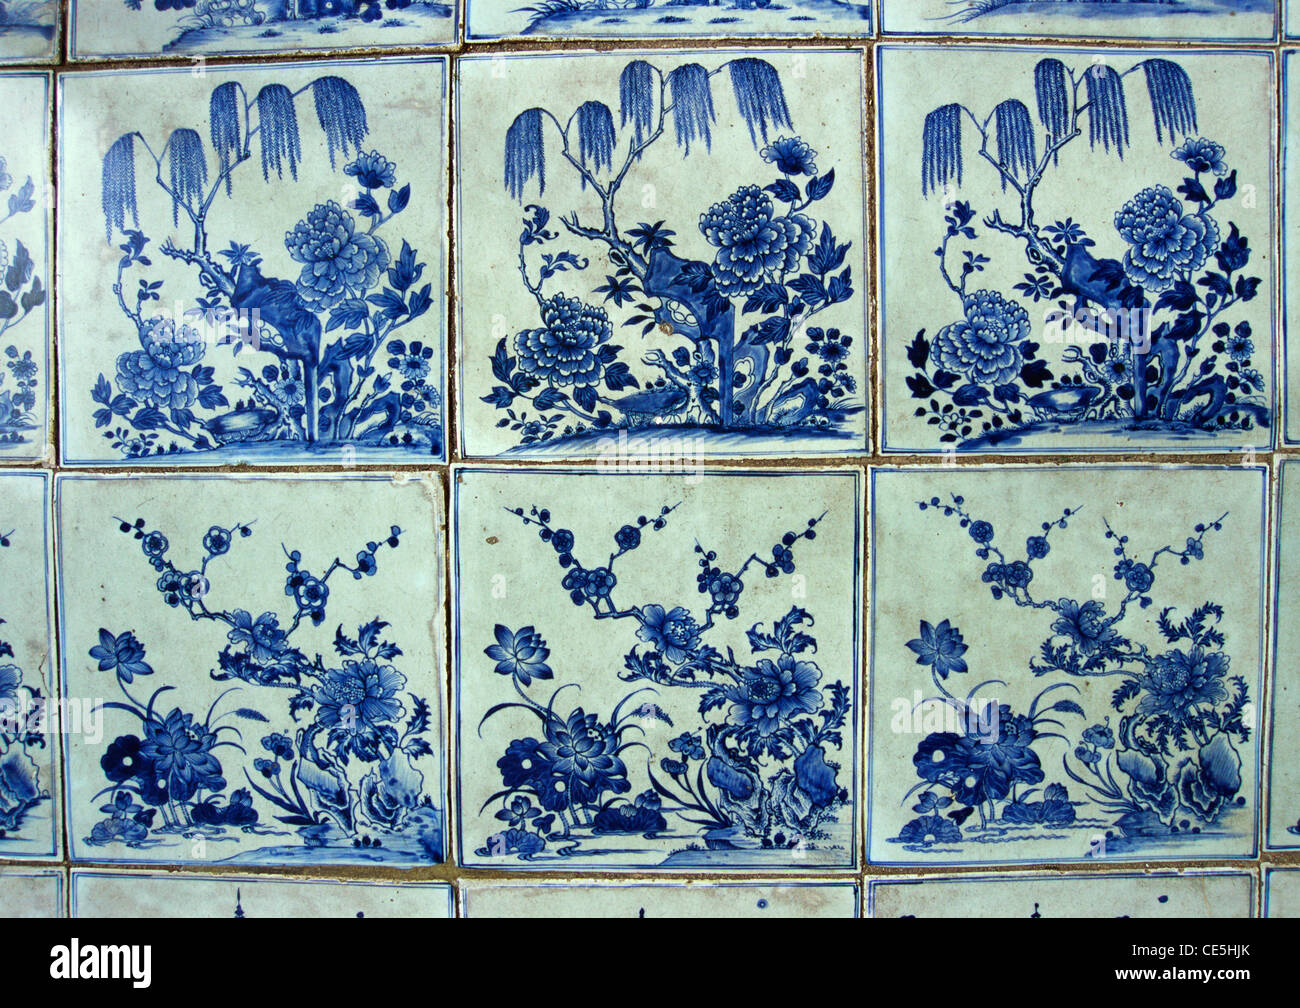 Famous 1200 X 600 Floor Tiles Tiny 16 Ceiling Tiles Rectangular 2 X 4 Ceiling Tile 2X2 Drop Ceiling Tiles Old 3 Tile Patterns For Floors Coloured3D Ceramic Tiles 18th Century Hand Painted Willow Patterned Glazed Floor Tiles In ..